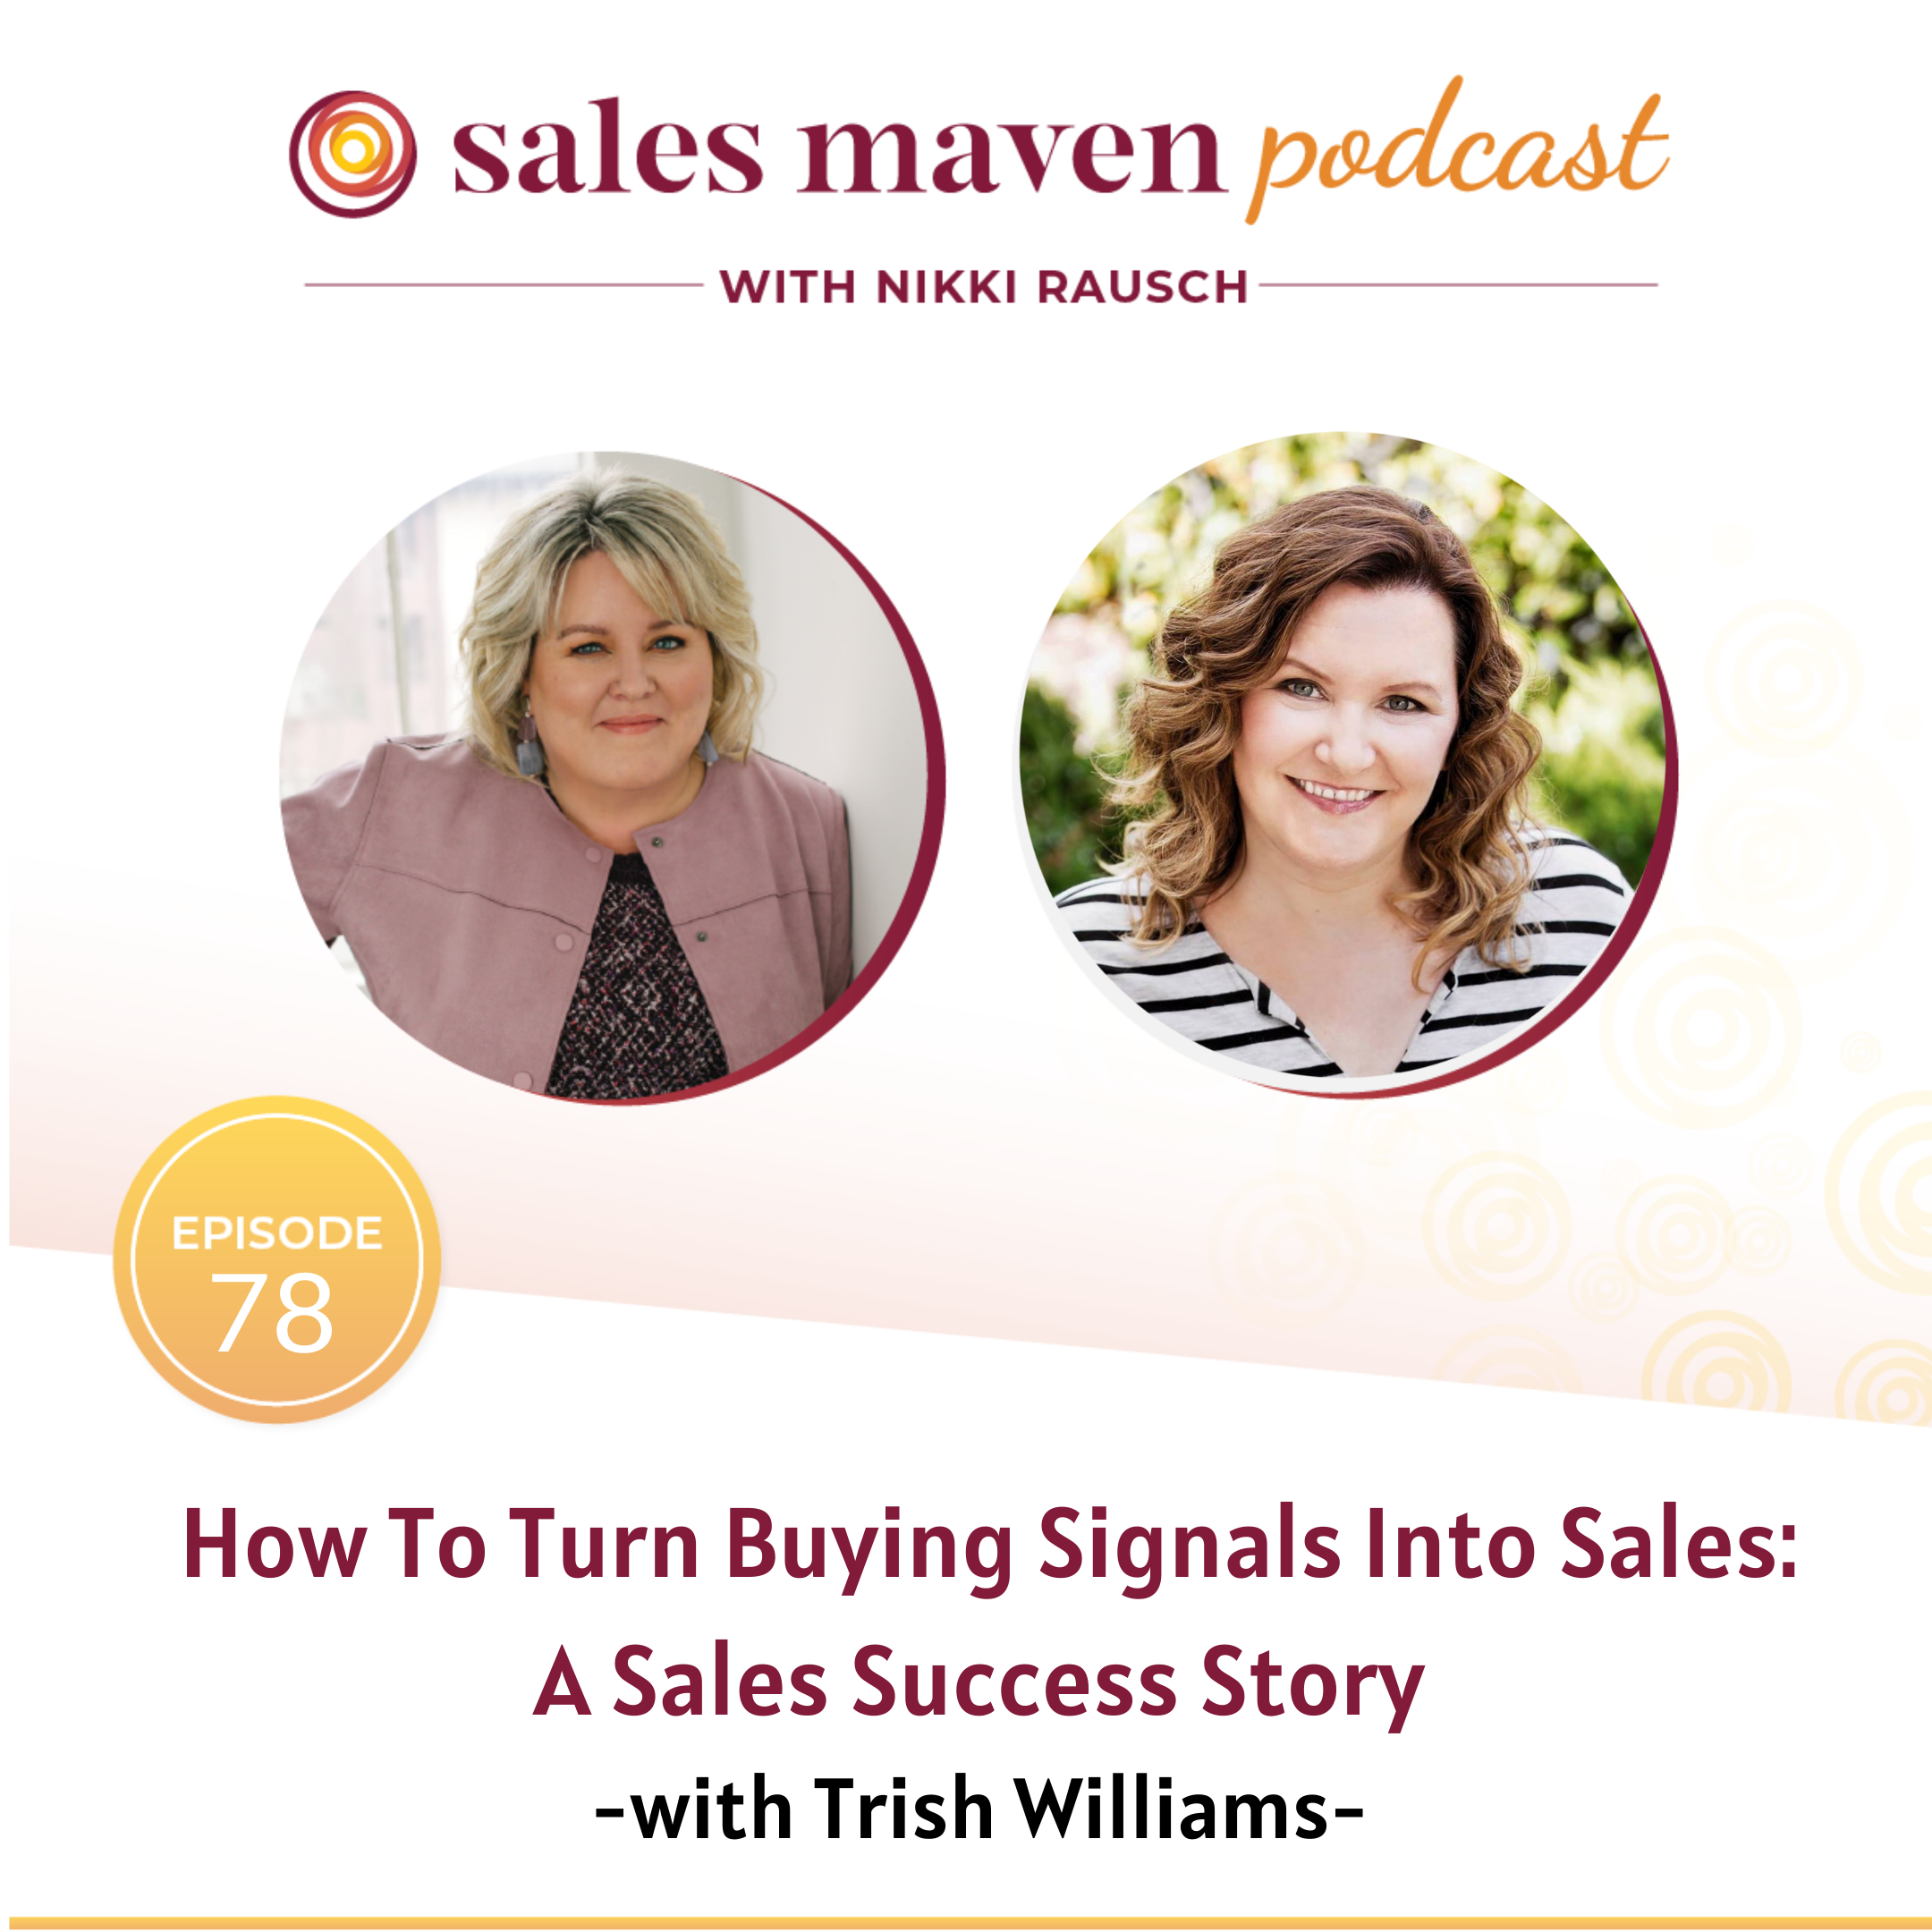 buying signals into sales